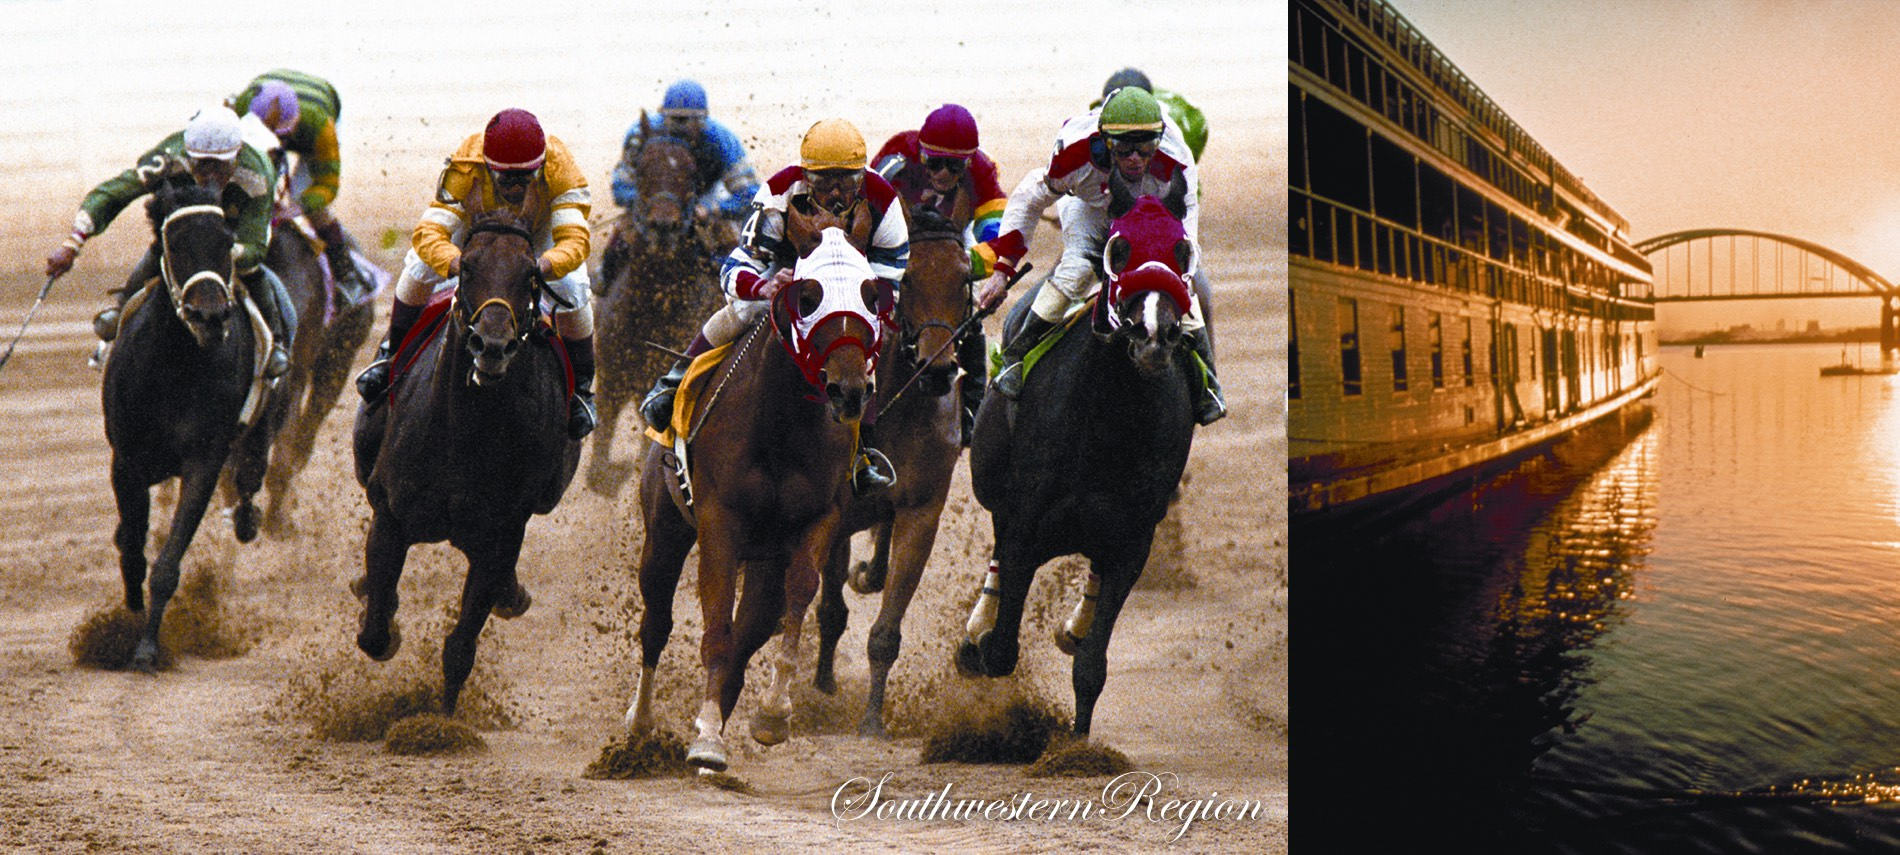 Jockeys on horses during race with text Southwestern Region, right side is bridge over water with building on water.